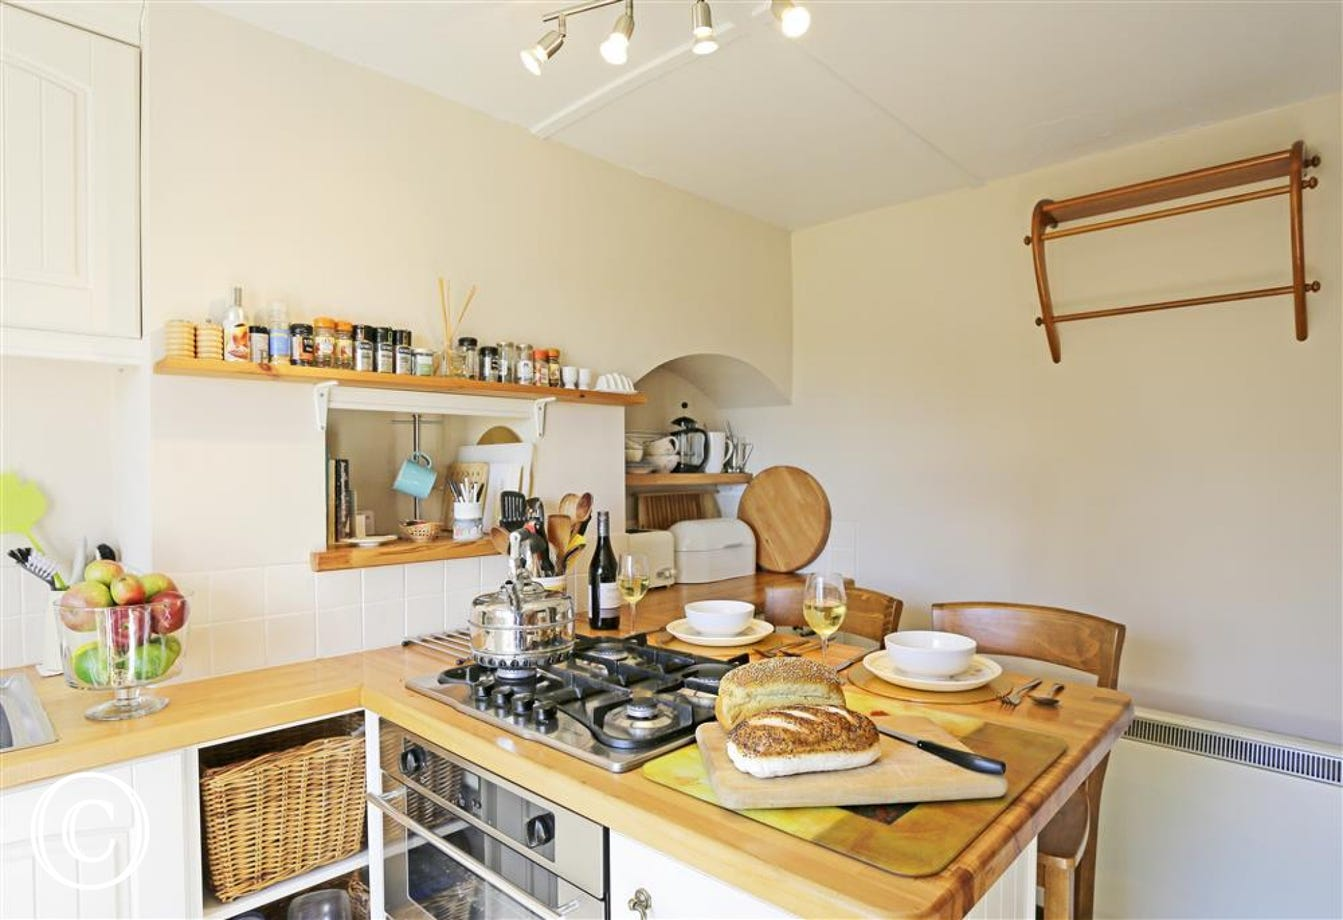 This quaint kitchen will be the hub of the cottage for tea in the garden or at the table.